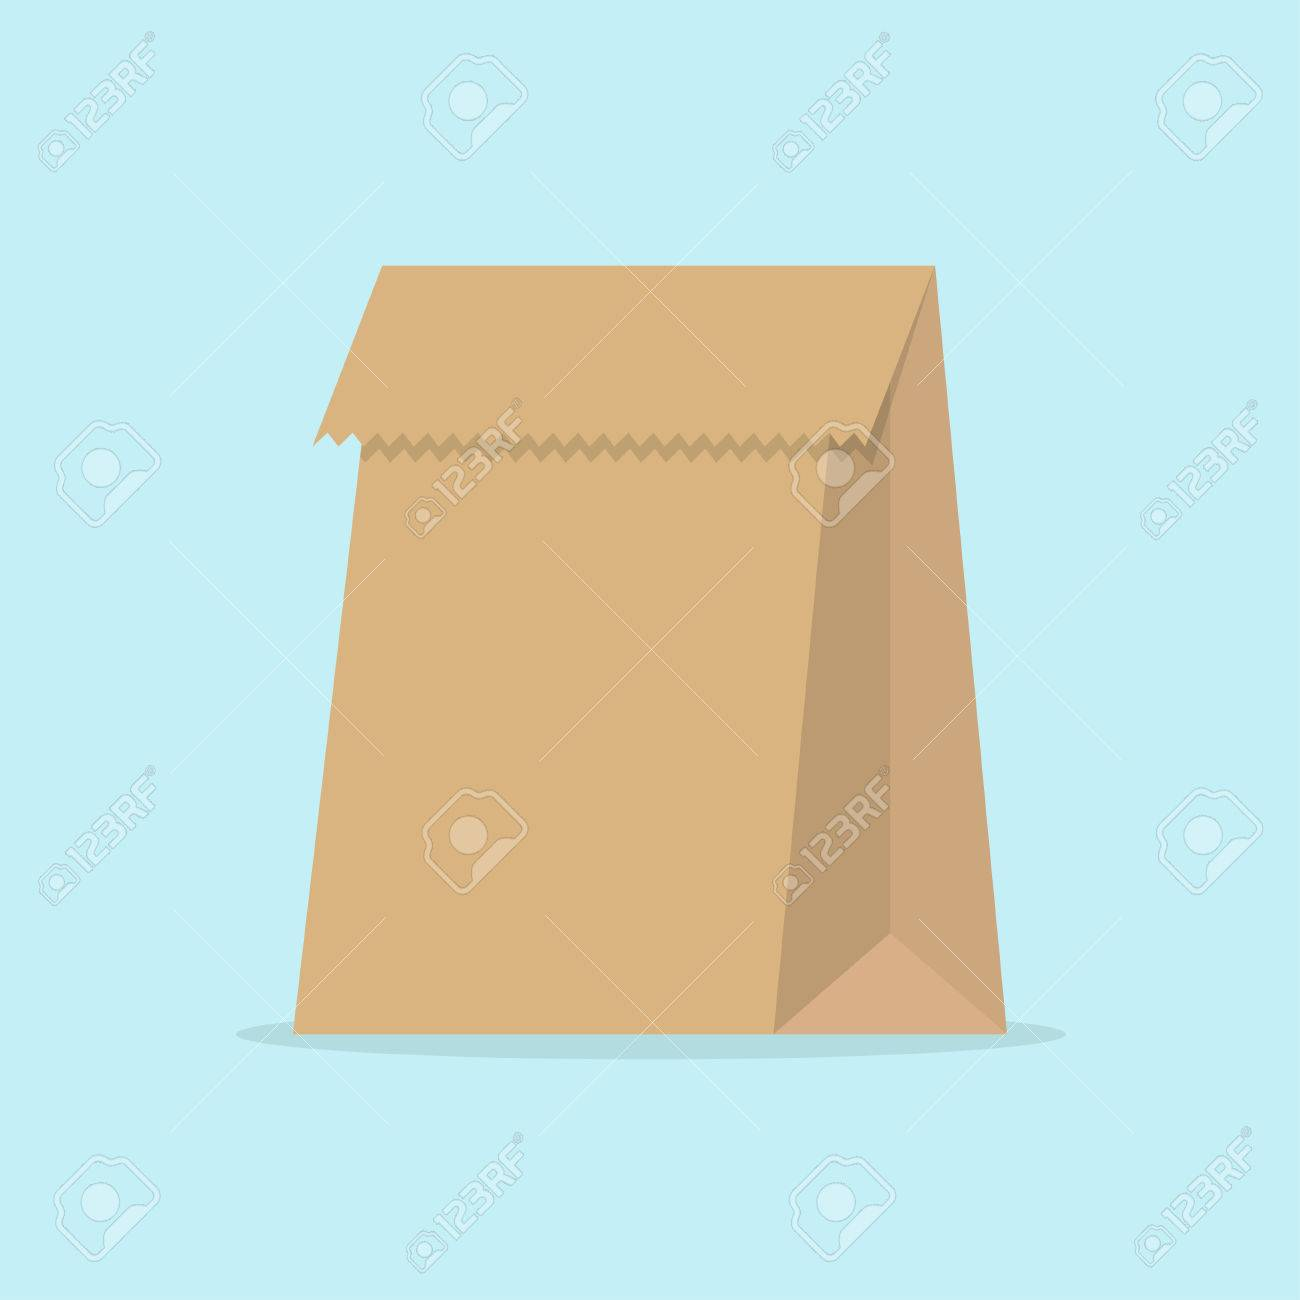 Paper Bag In Flat Style Food Image Vector Illustration